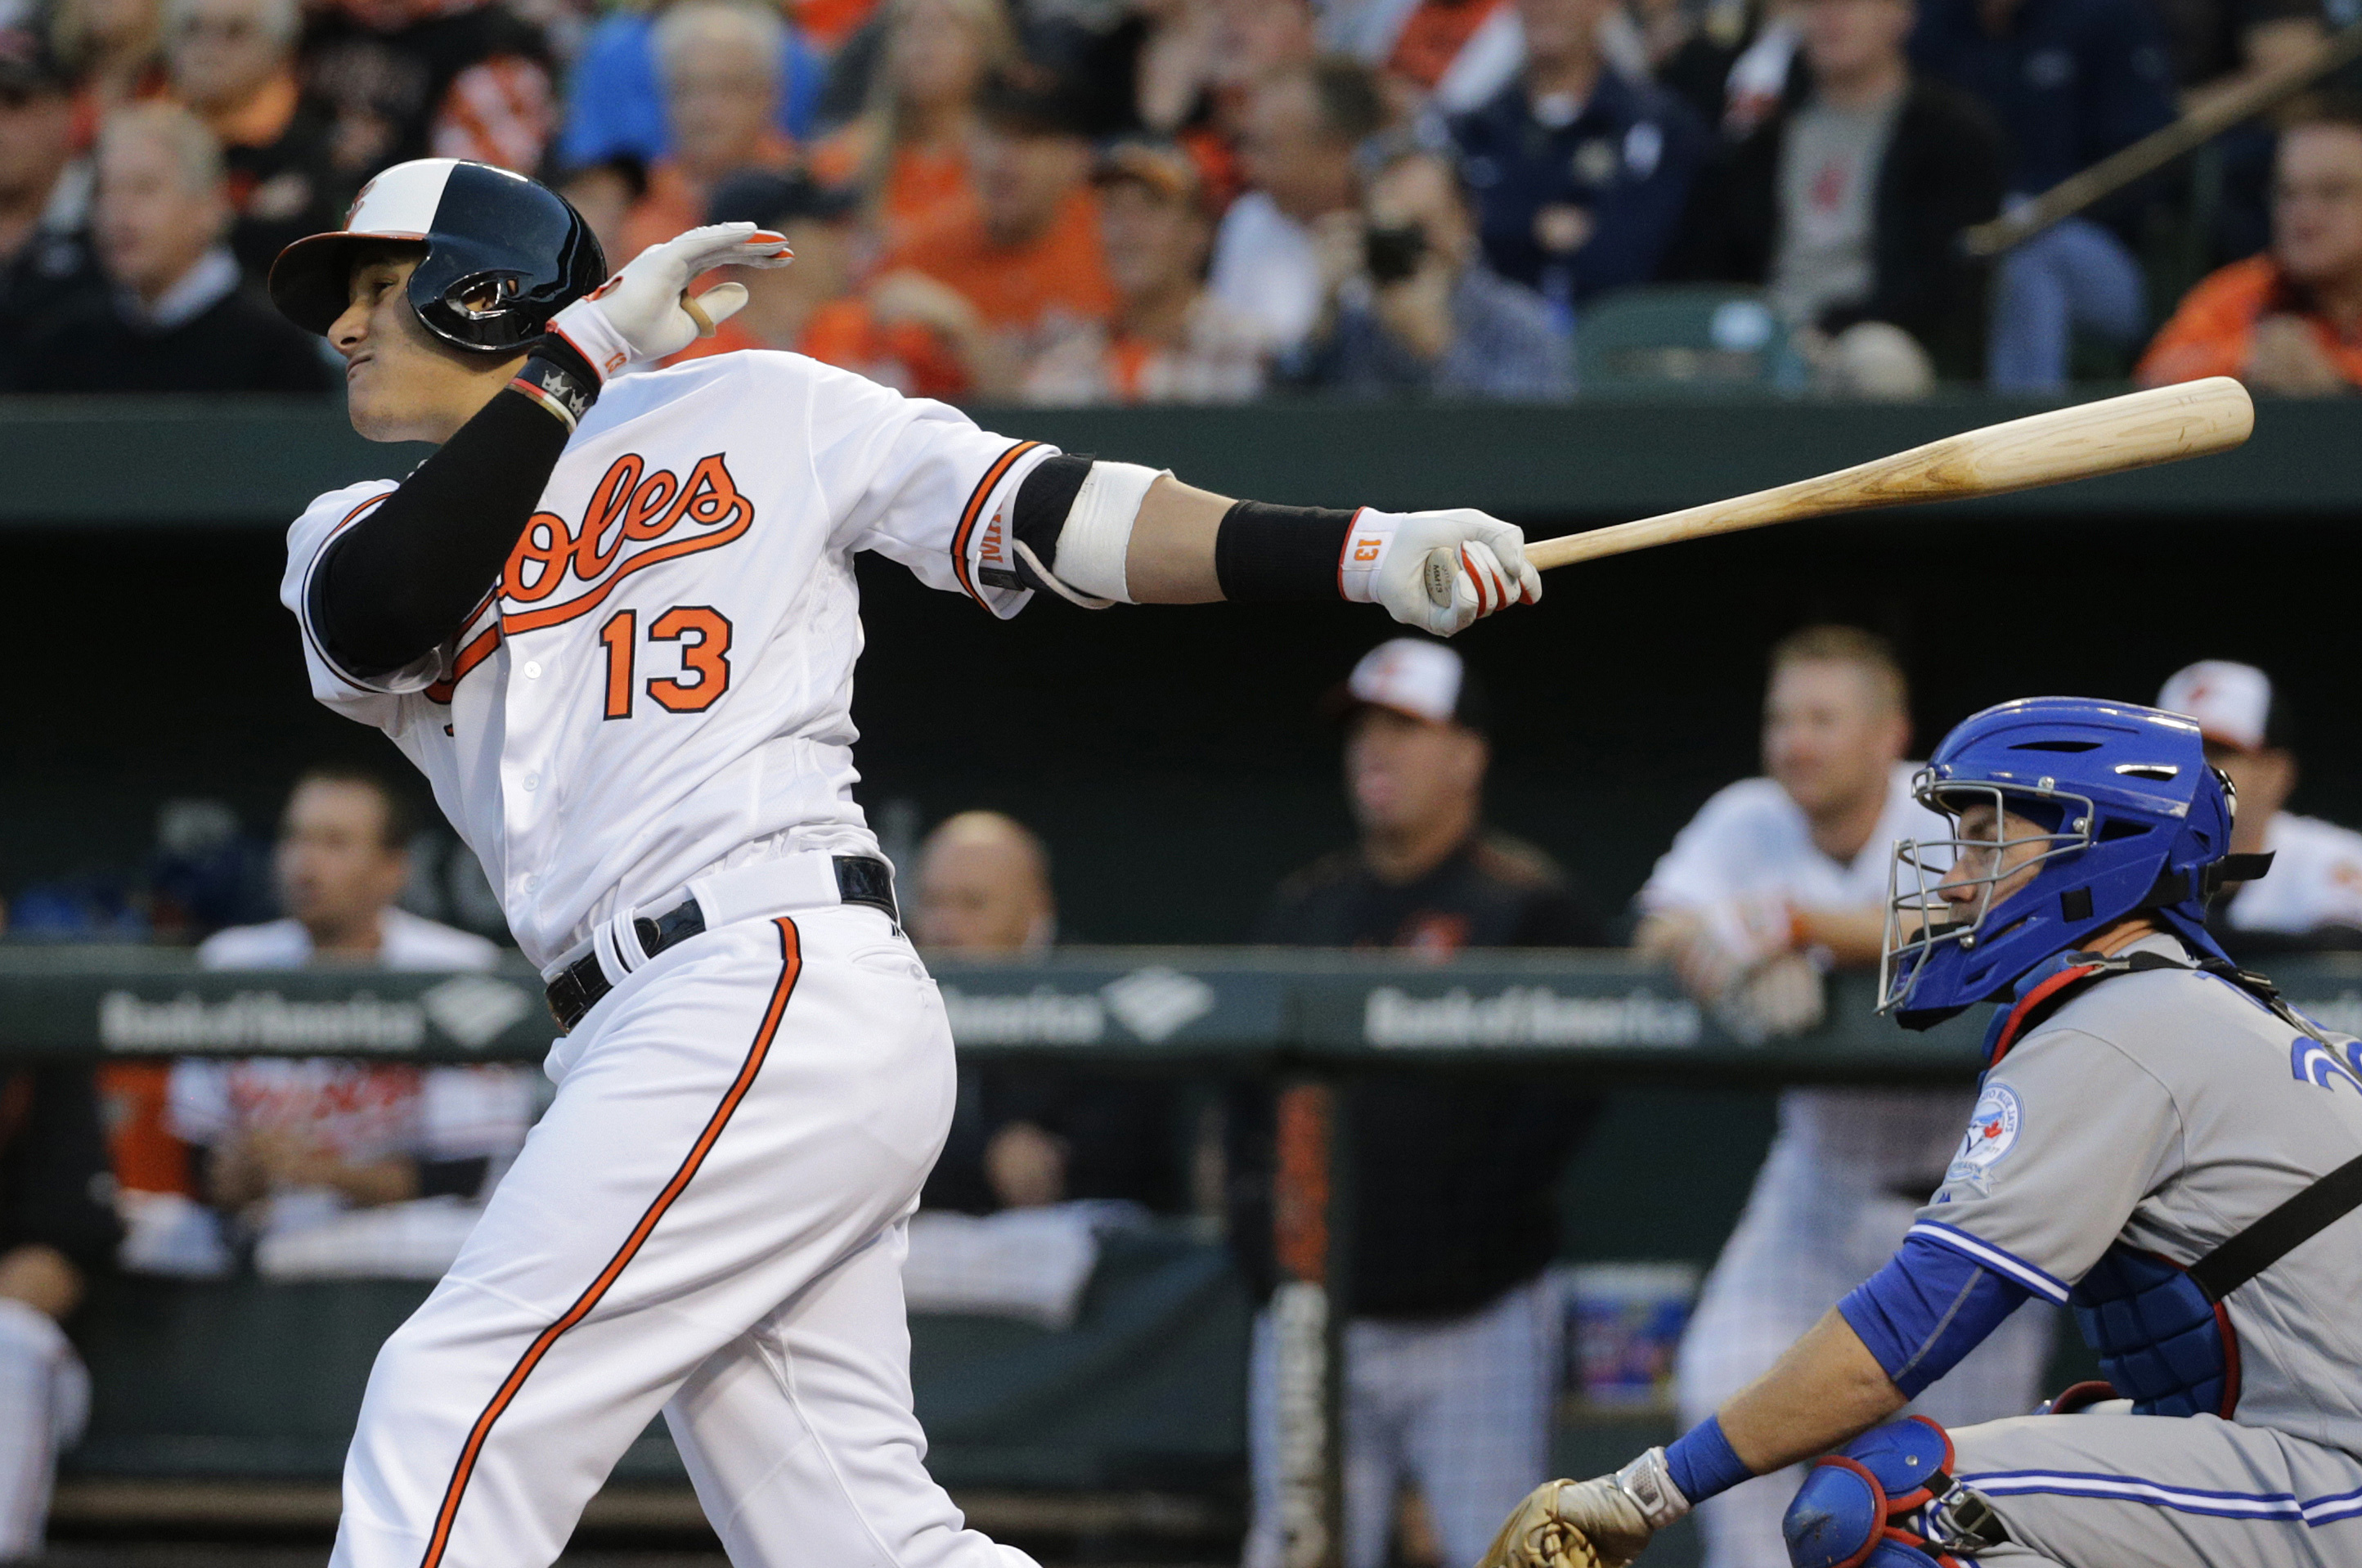 Baltimore Orioles' Manny Machado, left, doubles in front of Toronto Blue Jays catcher Josh Thole in the first inning of a baseball game in Baltimore, Wednesday, April 20, 2016. Joey Rickard scored on the play. (AP Photo/Patrick Semansky)